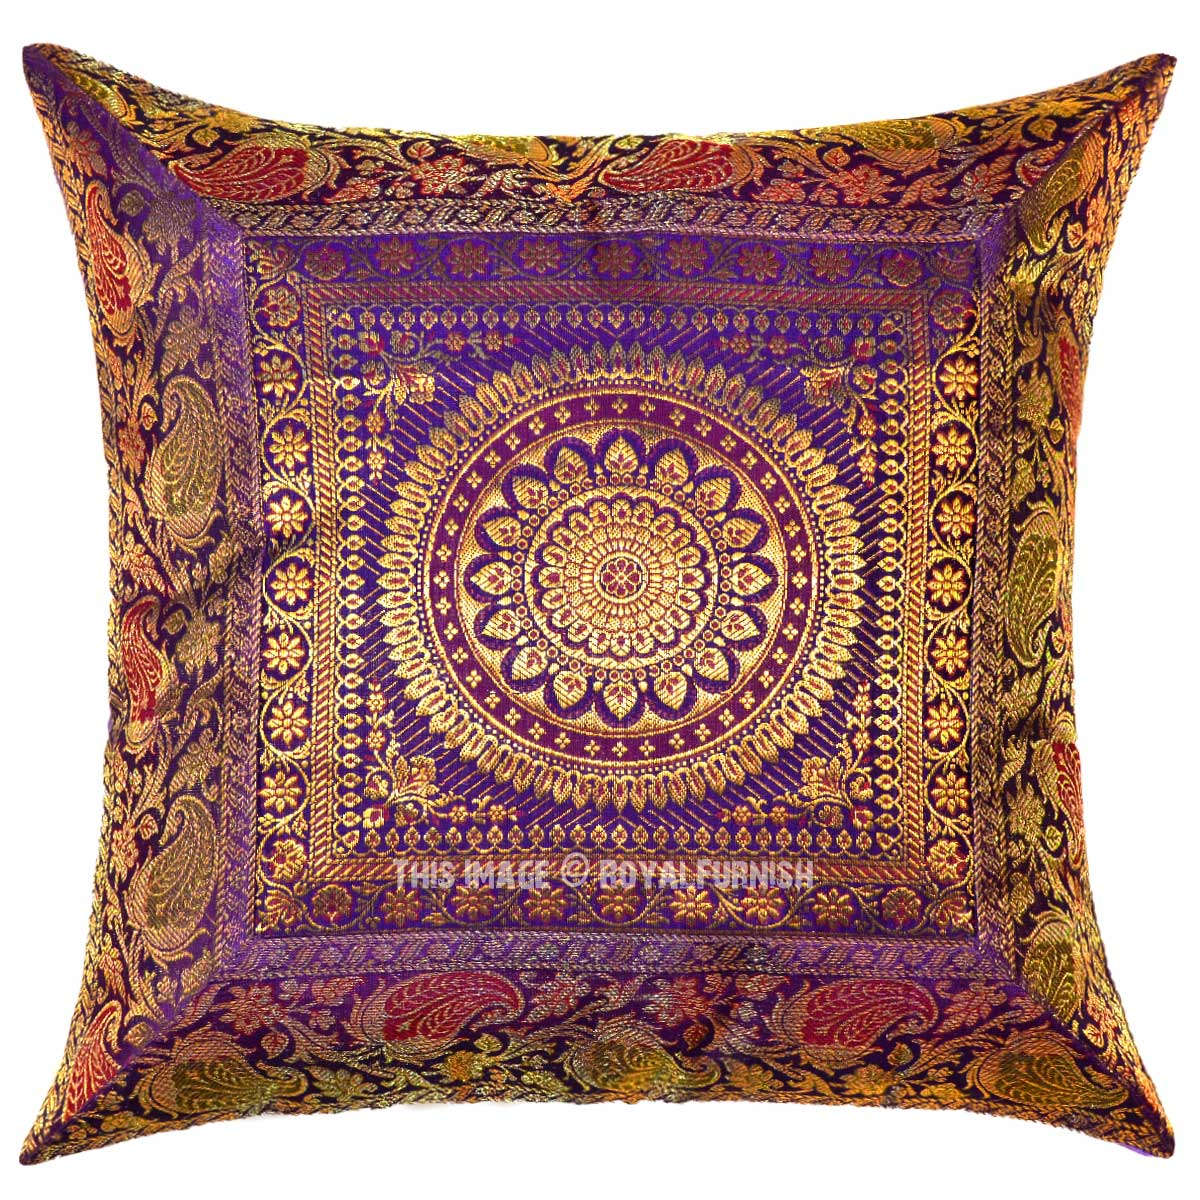 Purple Silk Throw Pillows : Purple Medallion Circle Decorative Outdoor Indoor Silk Square Throw Pillow Cover 16X16 Inch ...